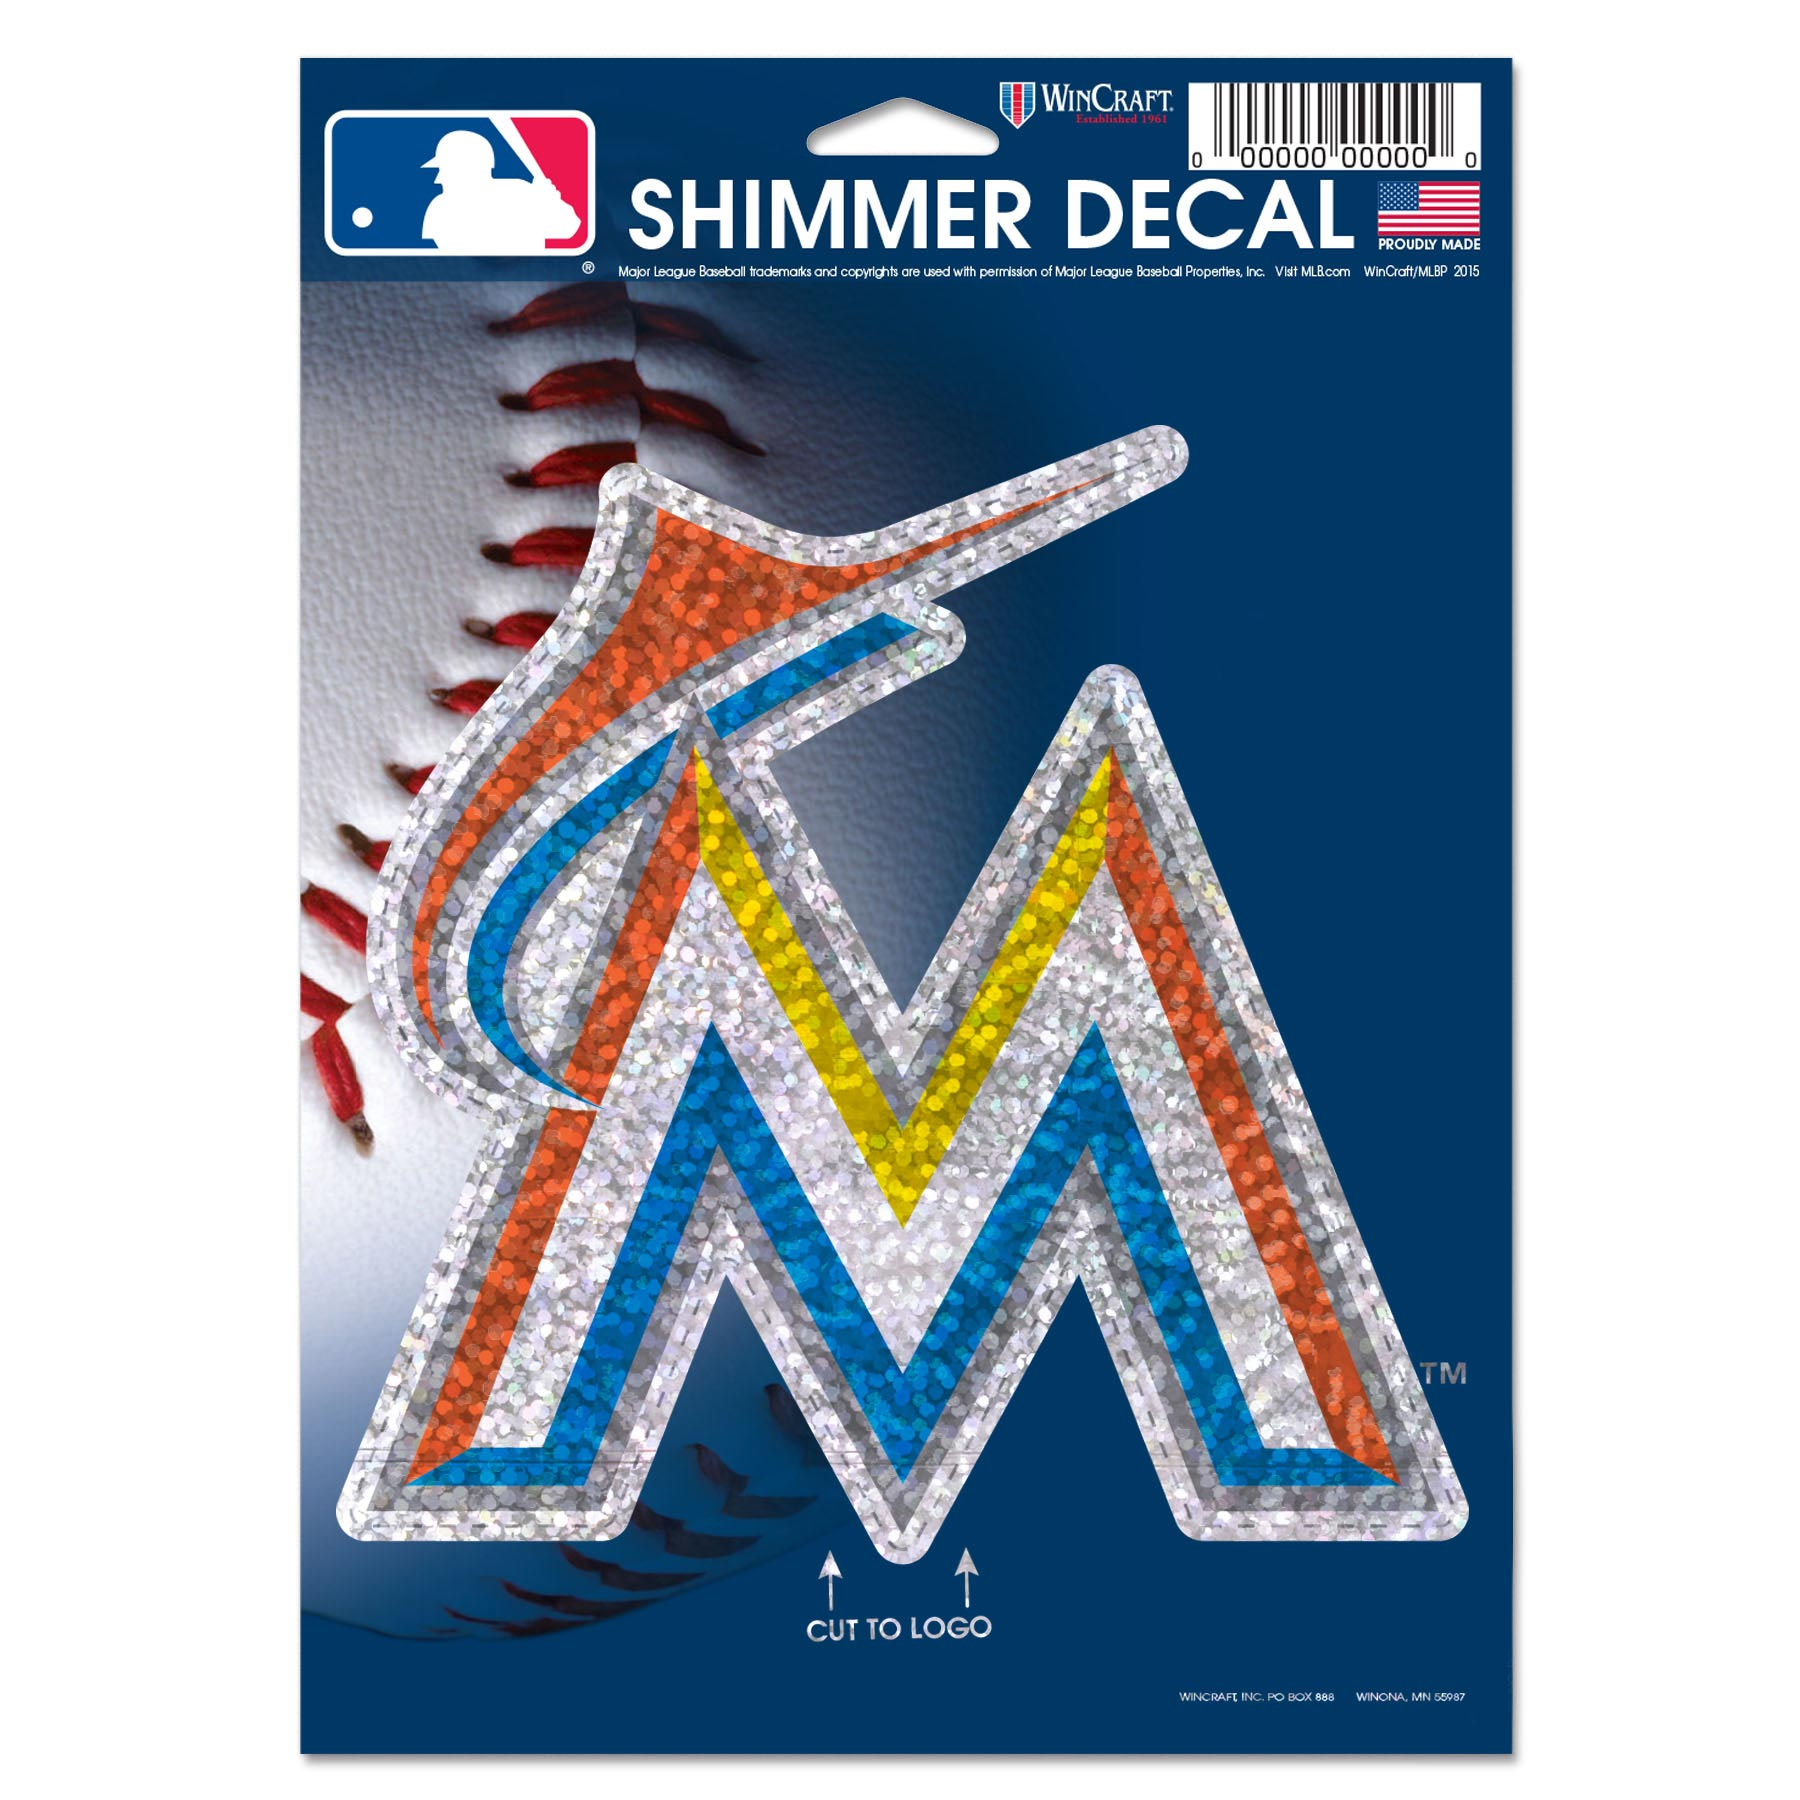 "Miami Marlins WinCraft 5"" x 7"" Shimmer Decal"